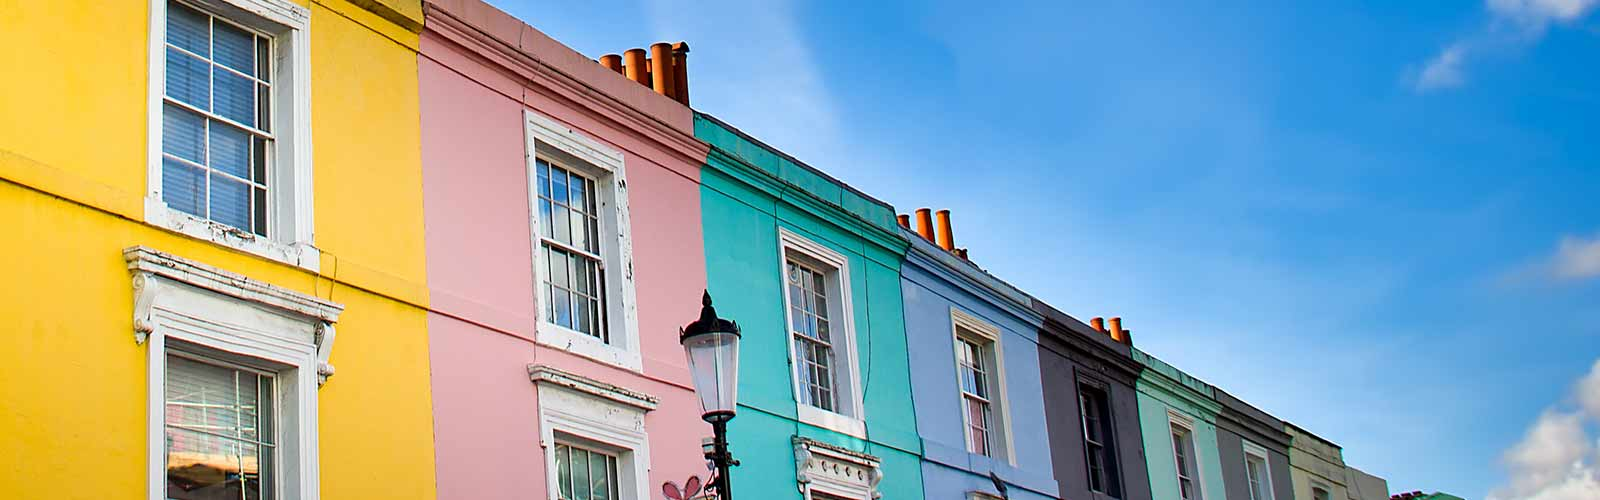 Colourful row of houses